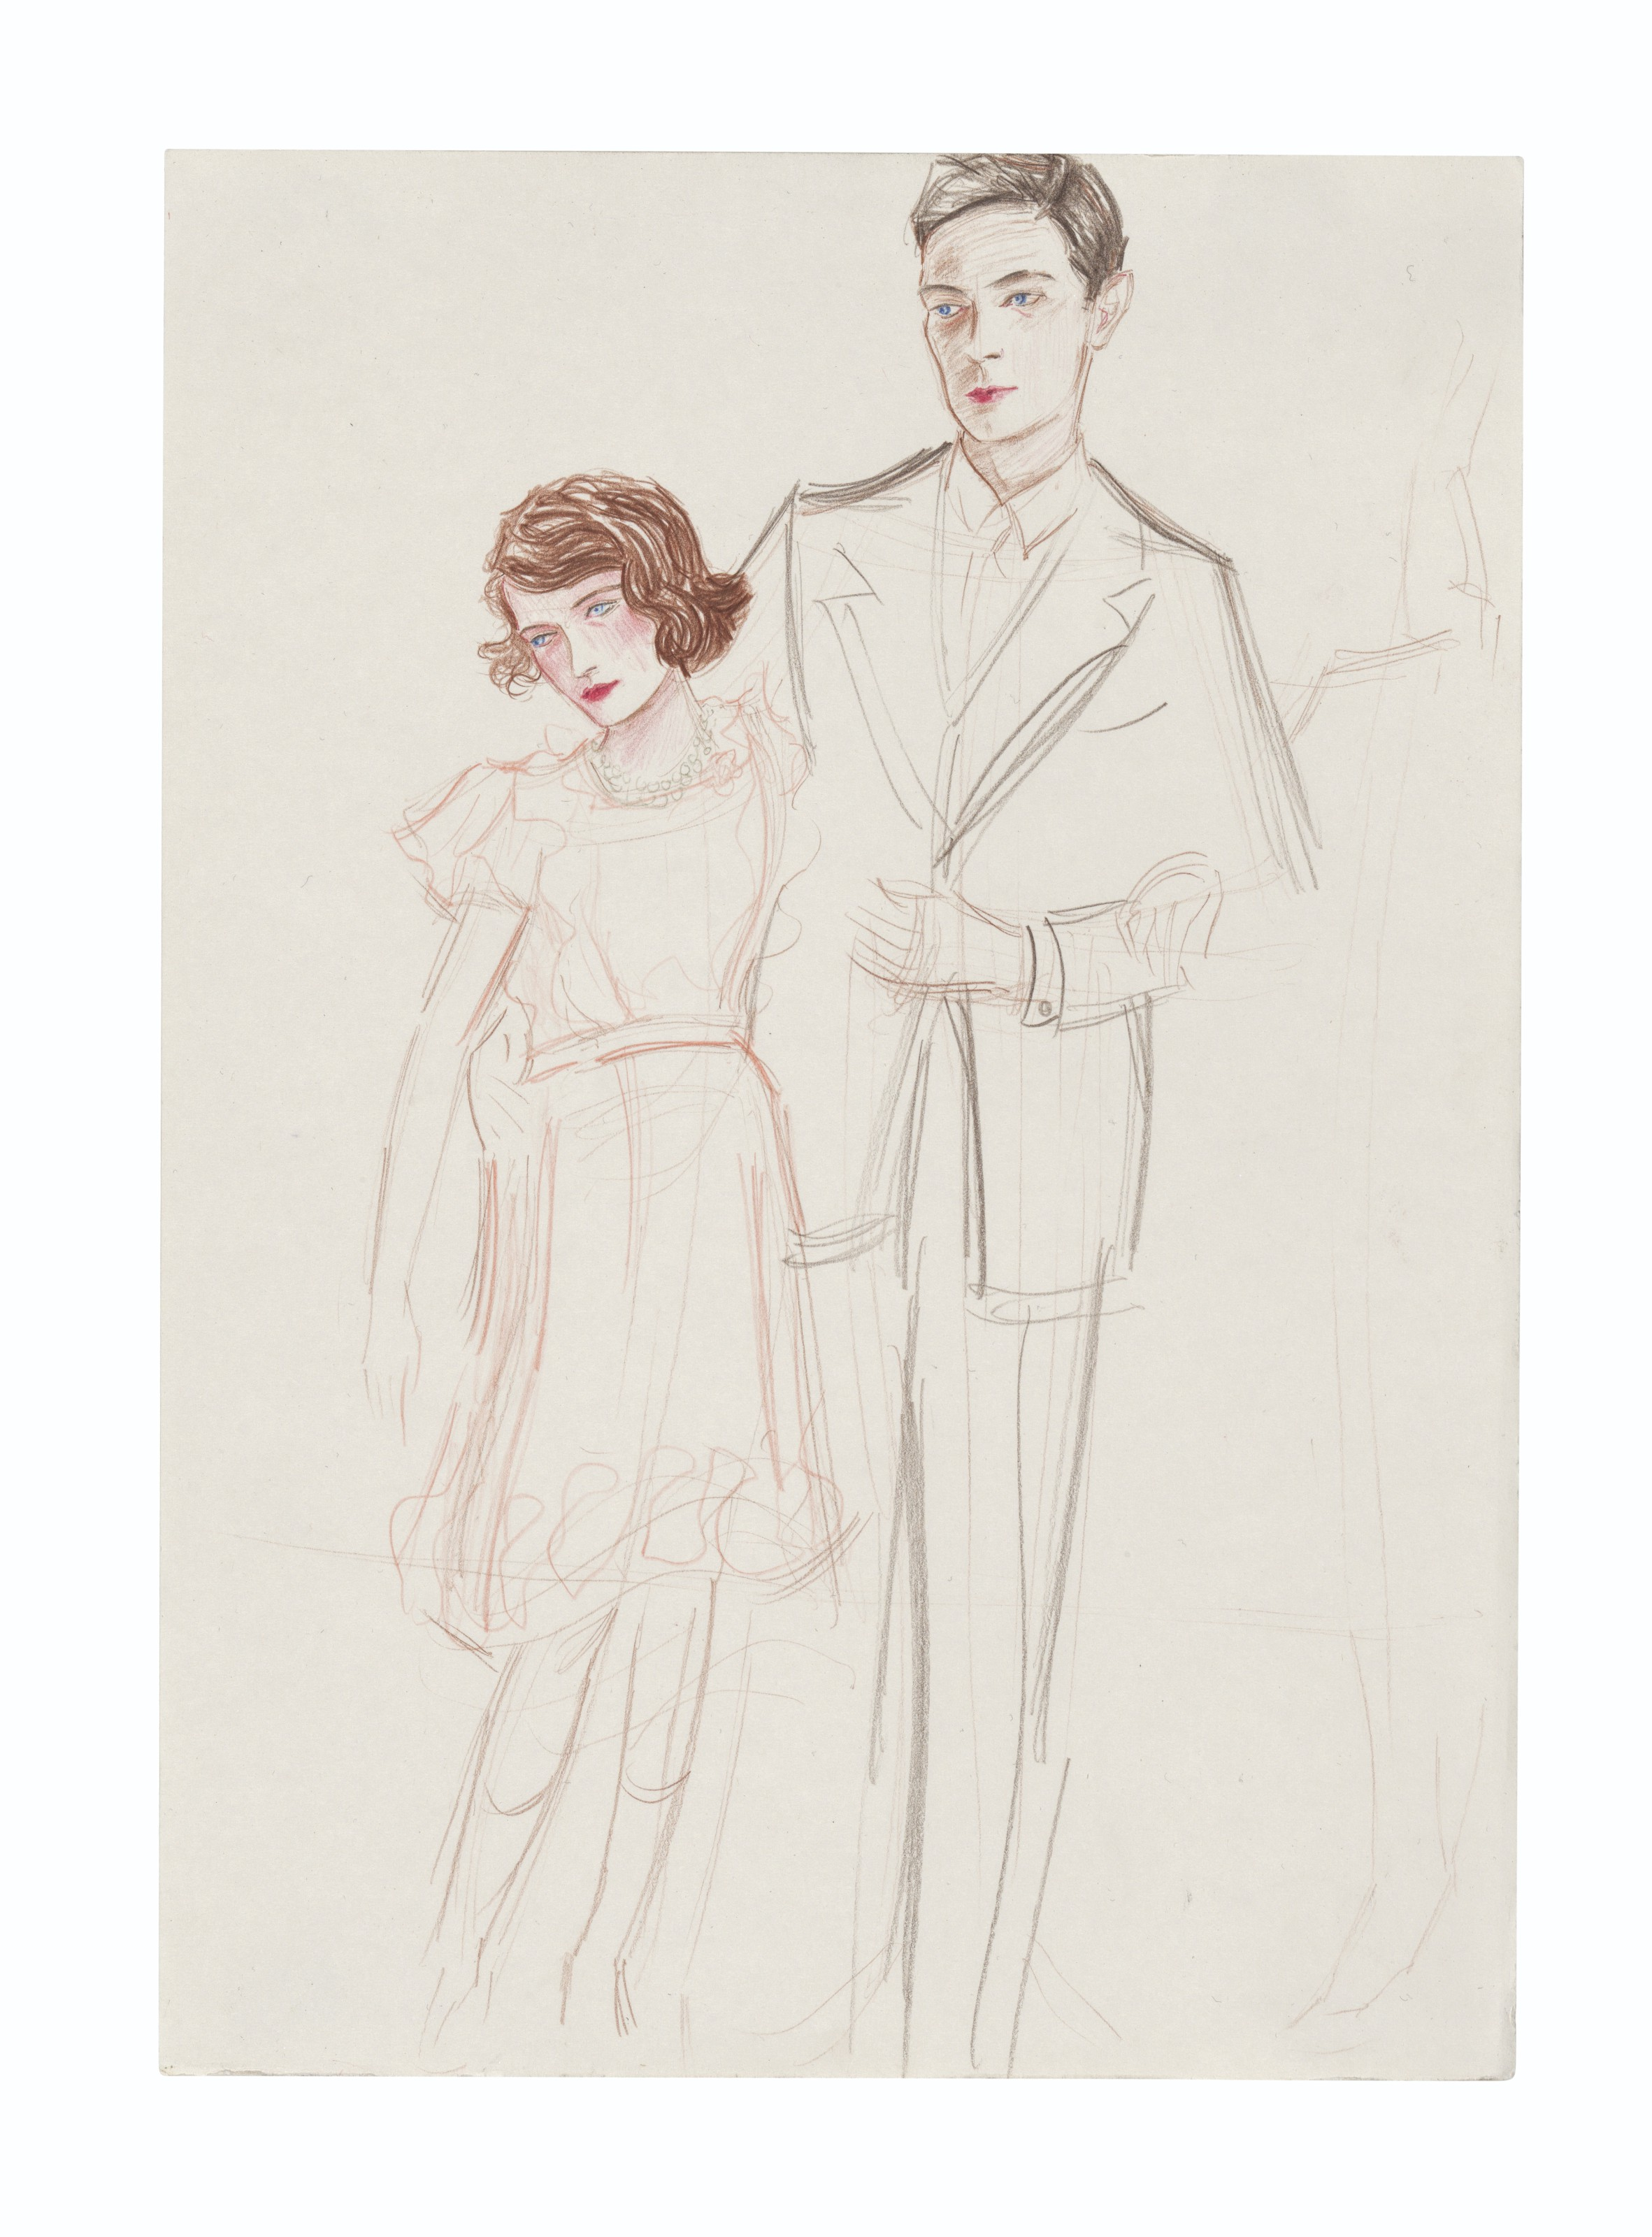 Elizabeth Peyton (b. 1965), Princess Elizabeth and Her Father, 2000.Coloured pencil on paper. Executed in 2000. 11¾ x 8¼ in (30 x 21.1 cm). Estimate £40,000-60,000. Offered in the 20th21st Century London Day Saleon 2 July 2021 at Christie's in London